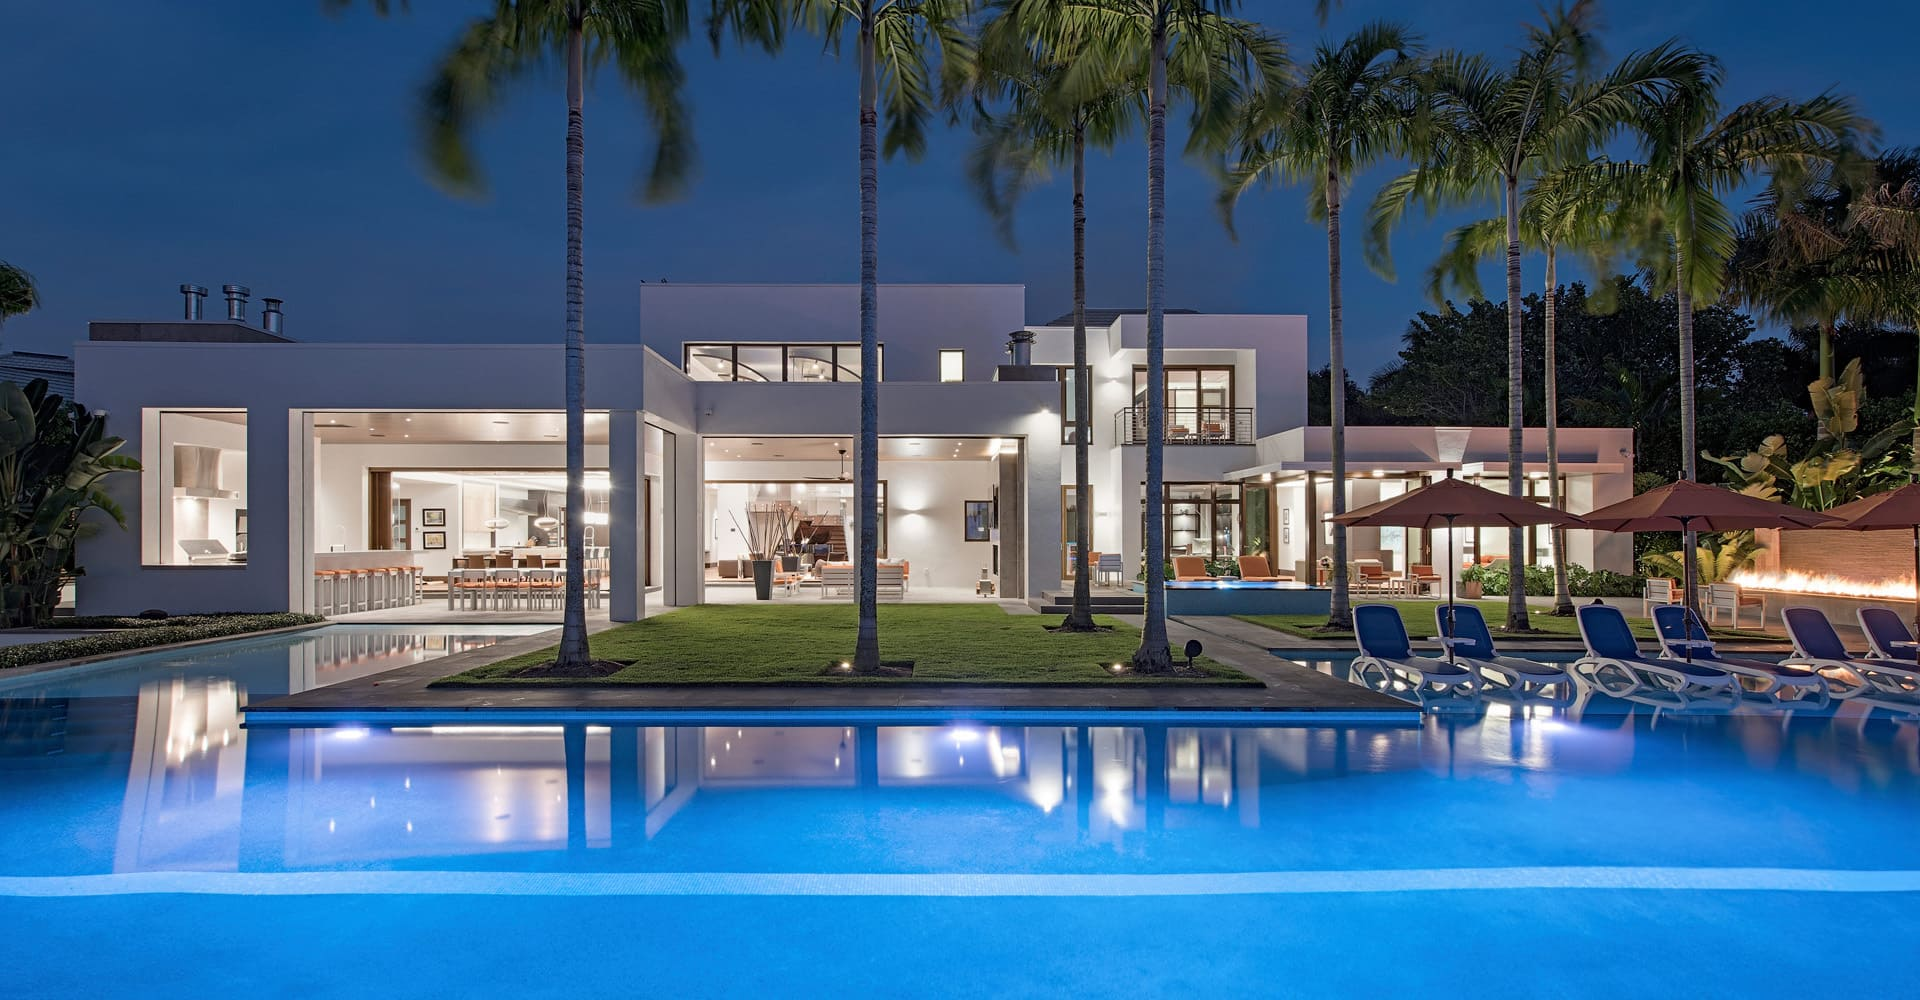 Art in architecture bcb homes naples florida for Modern homes in florida